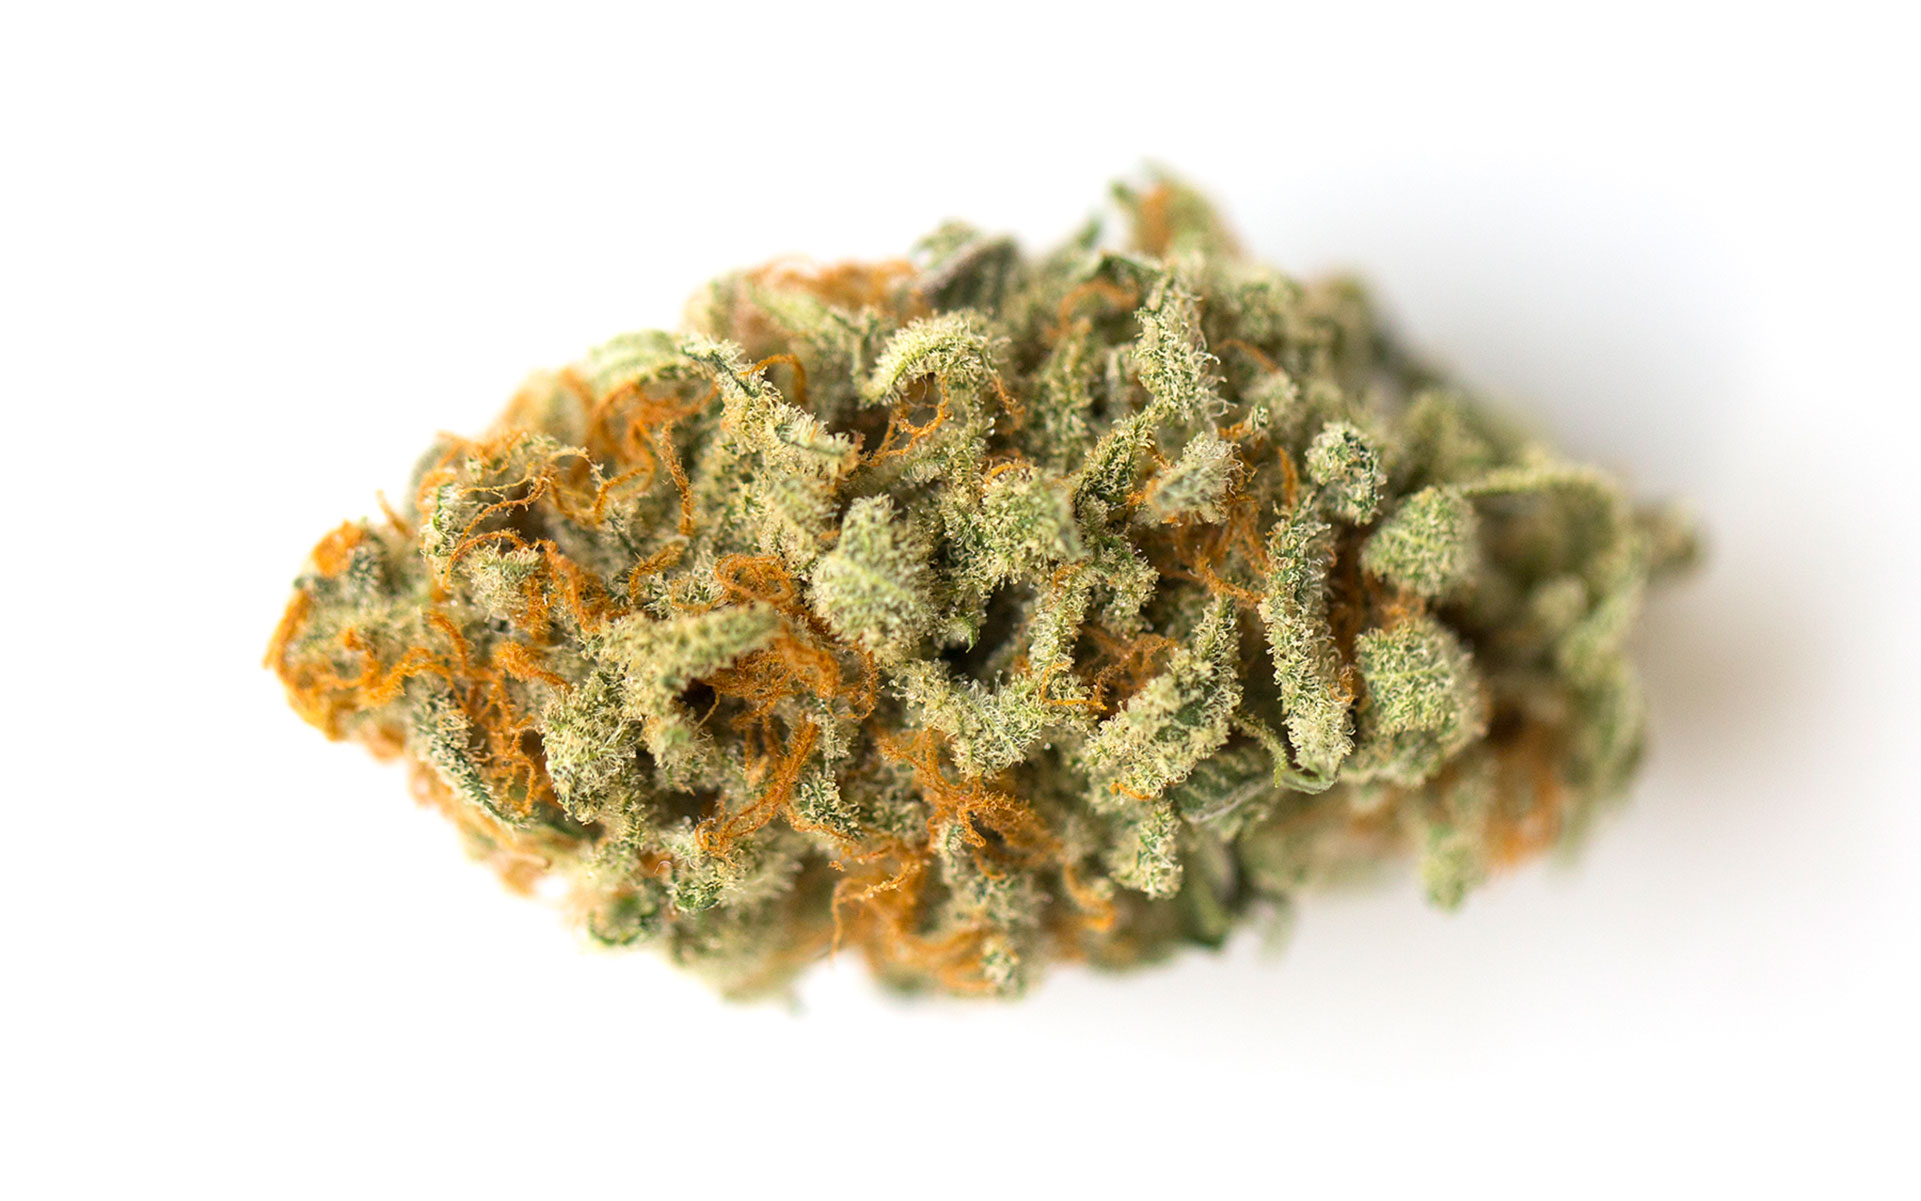 3 Aromatic Cannabis Strains to Chase Down in Oregon